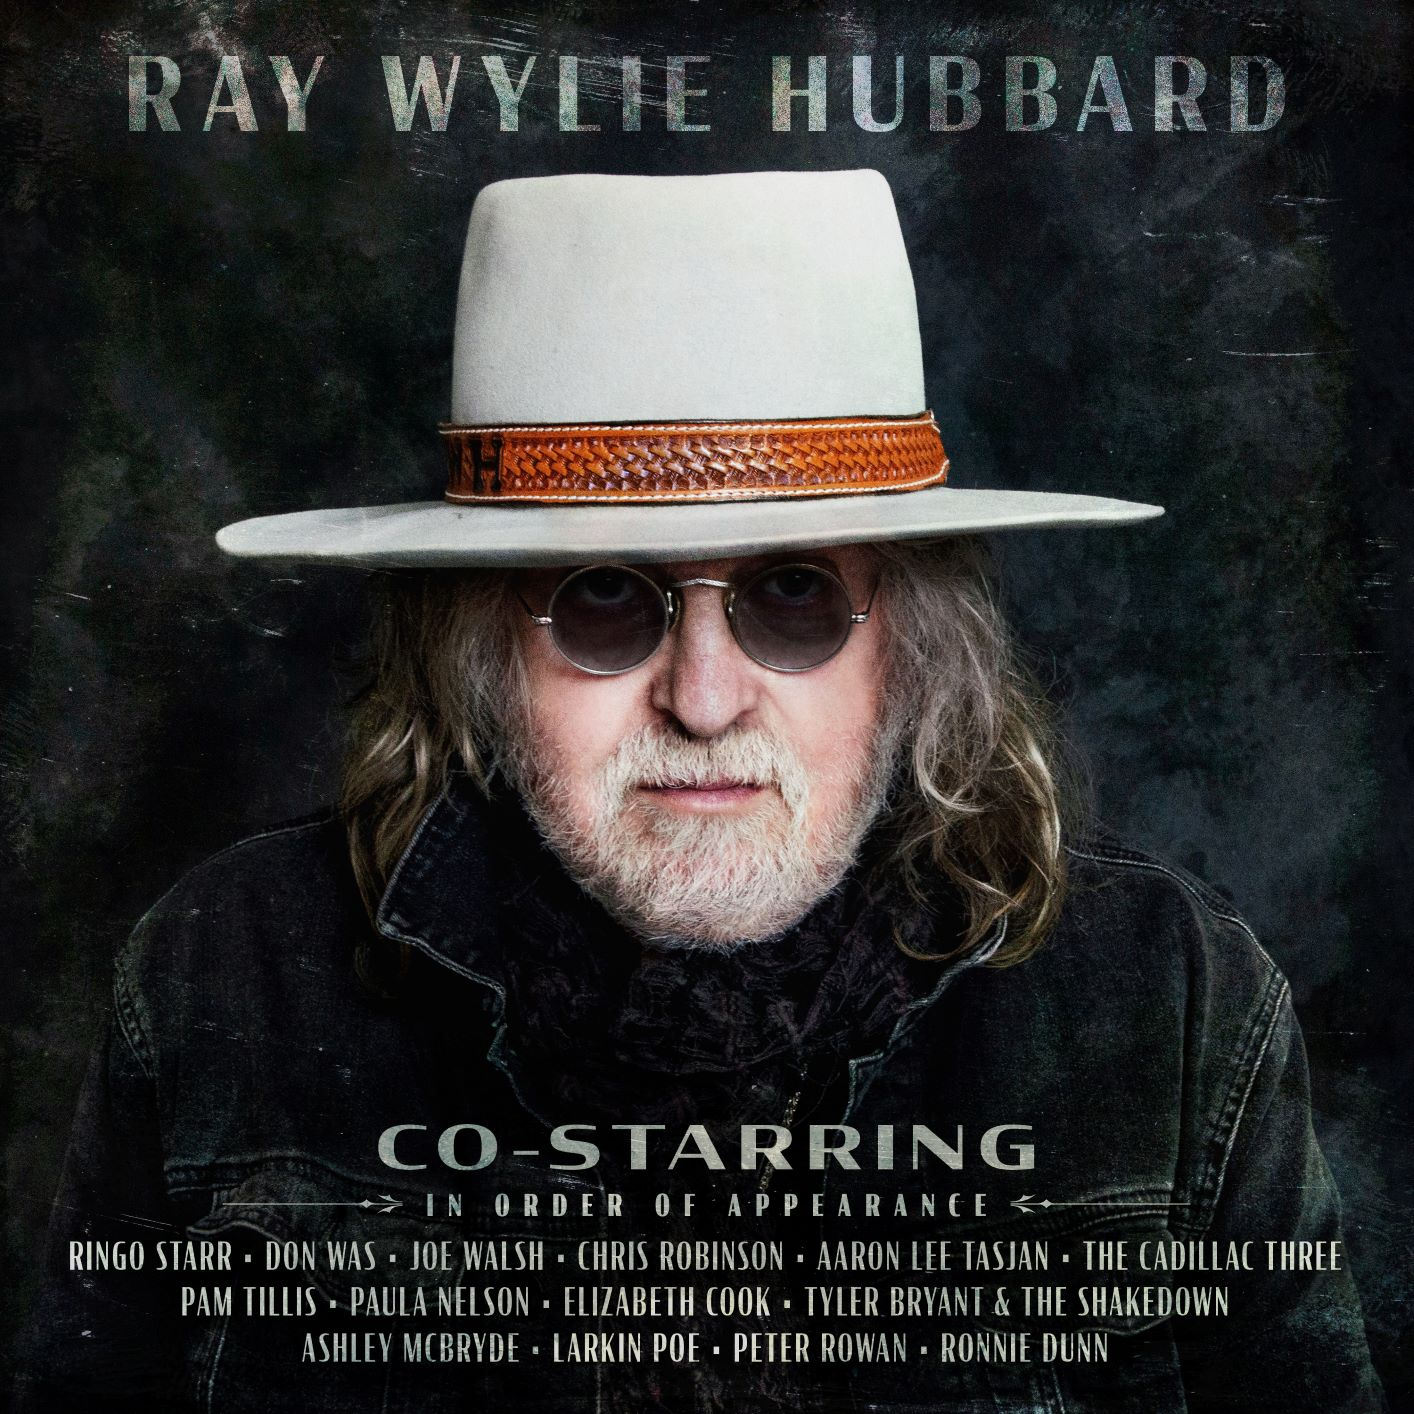 Ray Wylie Hubbard - Co-Starring [LP]